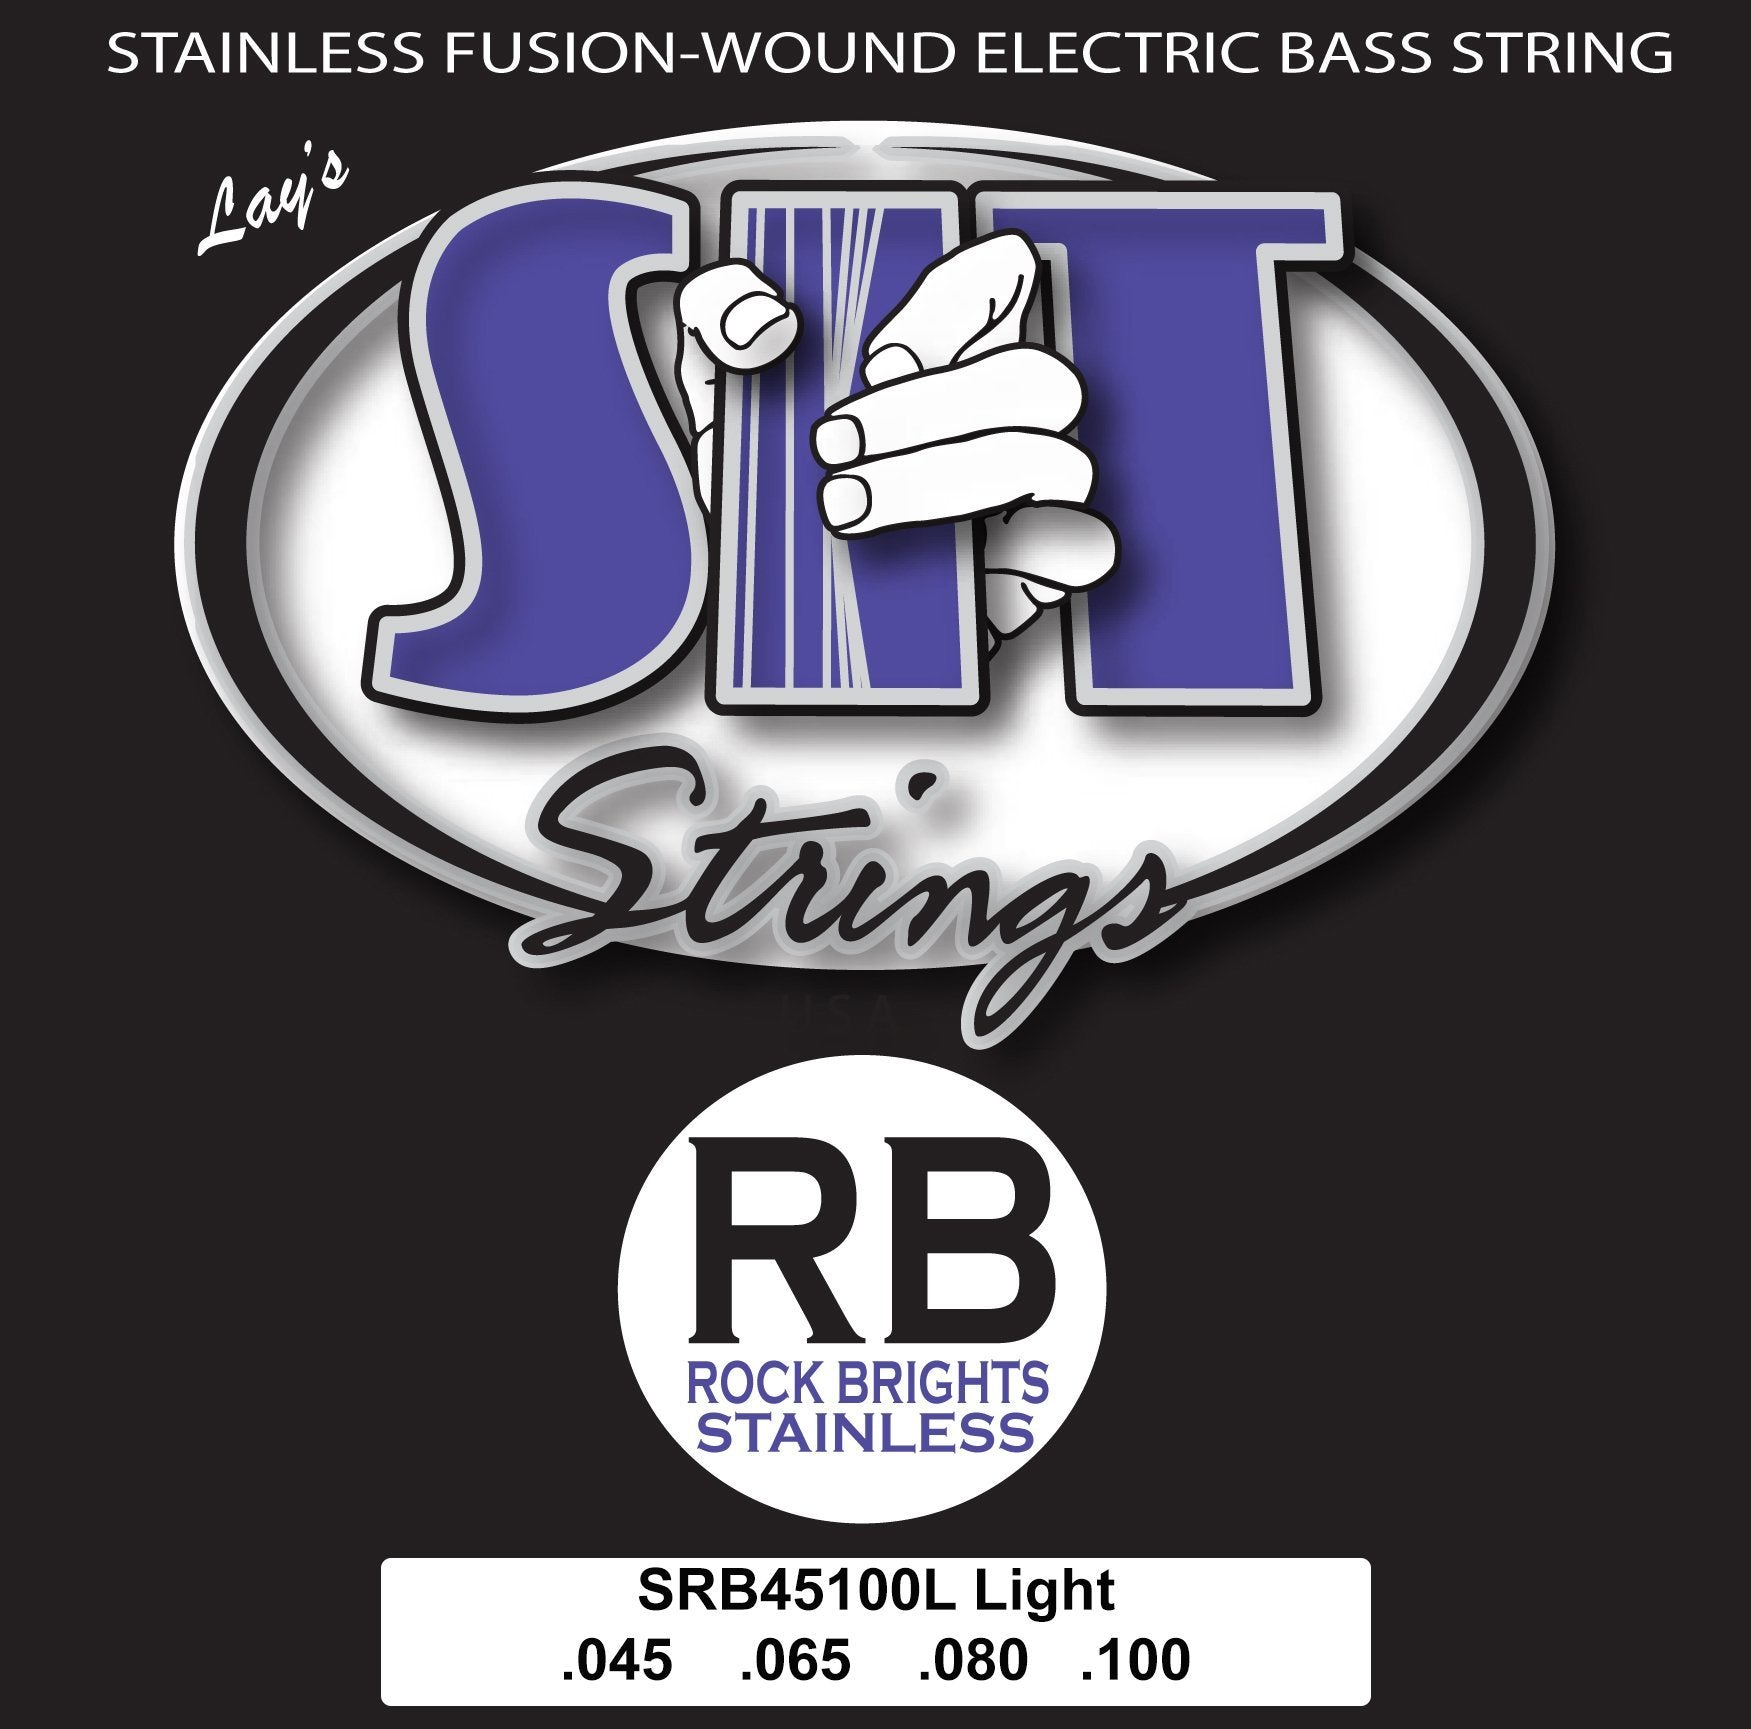 SRB45100L LIGHT ROCK BRIGHT STAINLESS BASS SIT STRING SIT - HIENDGUITAR.COM